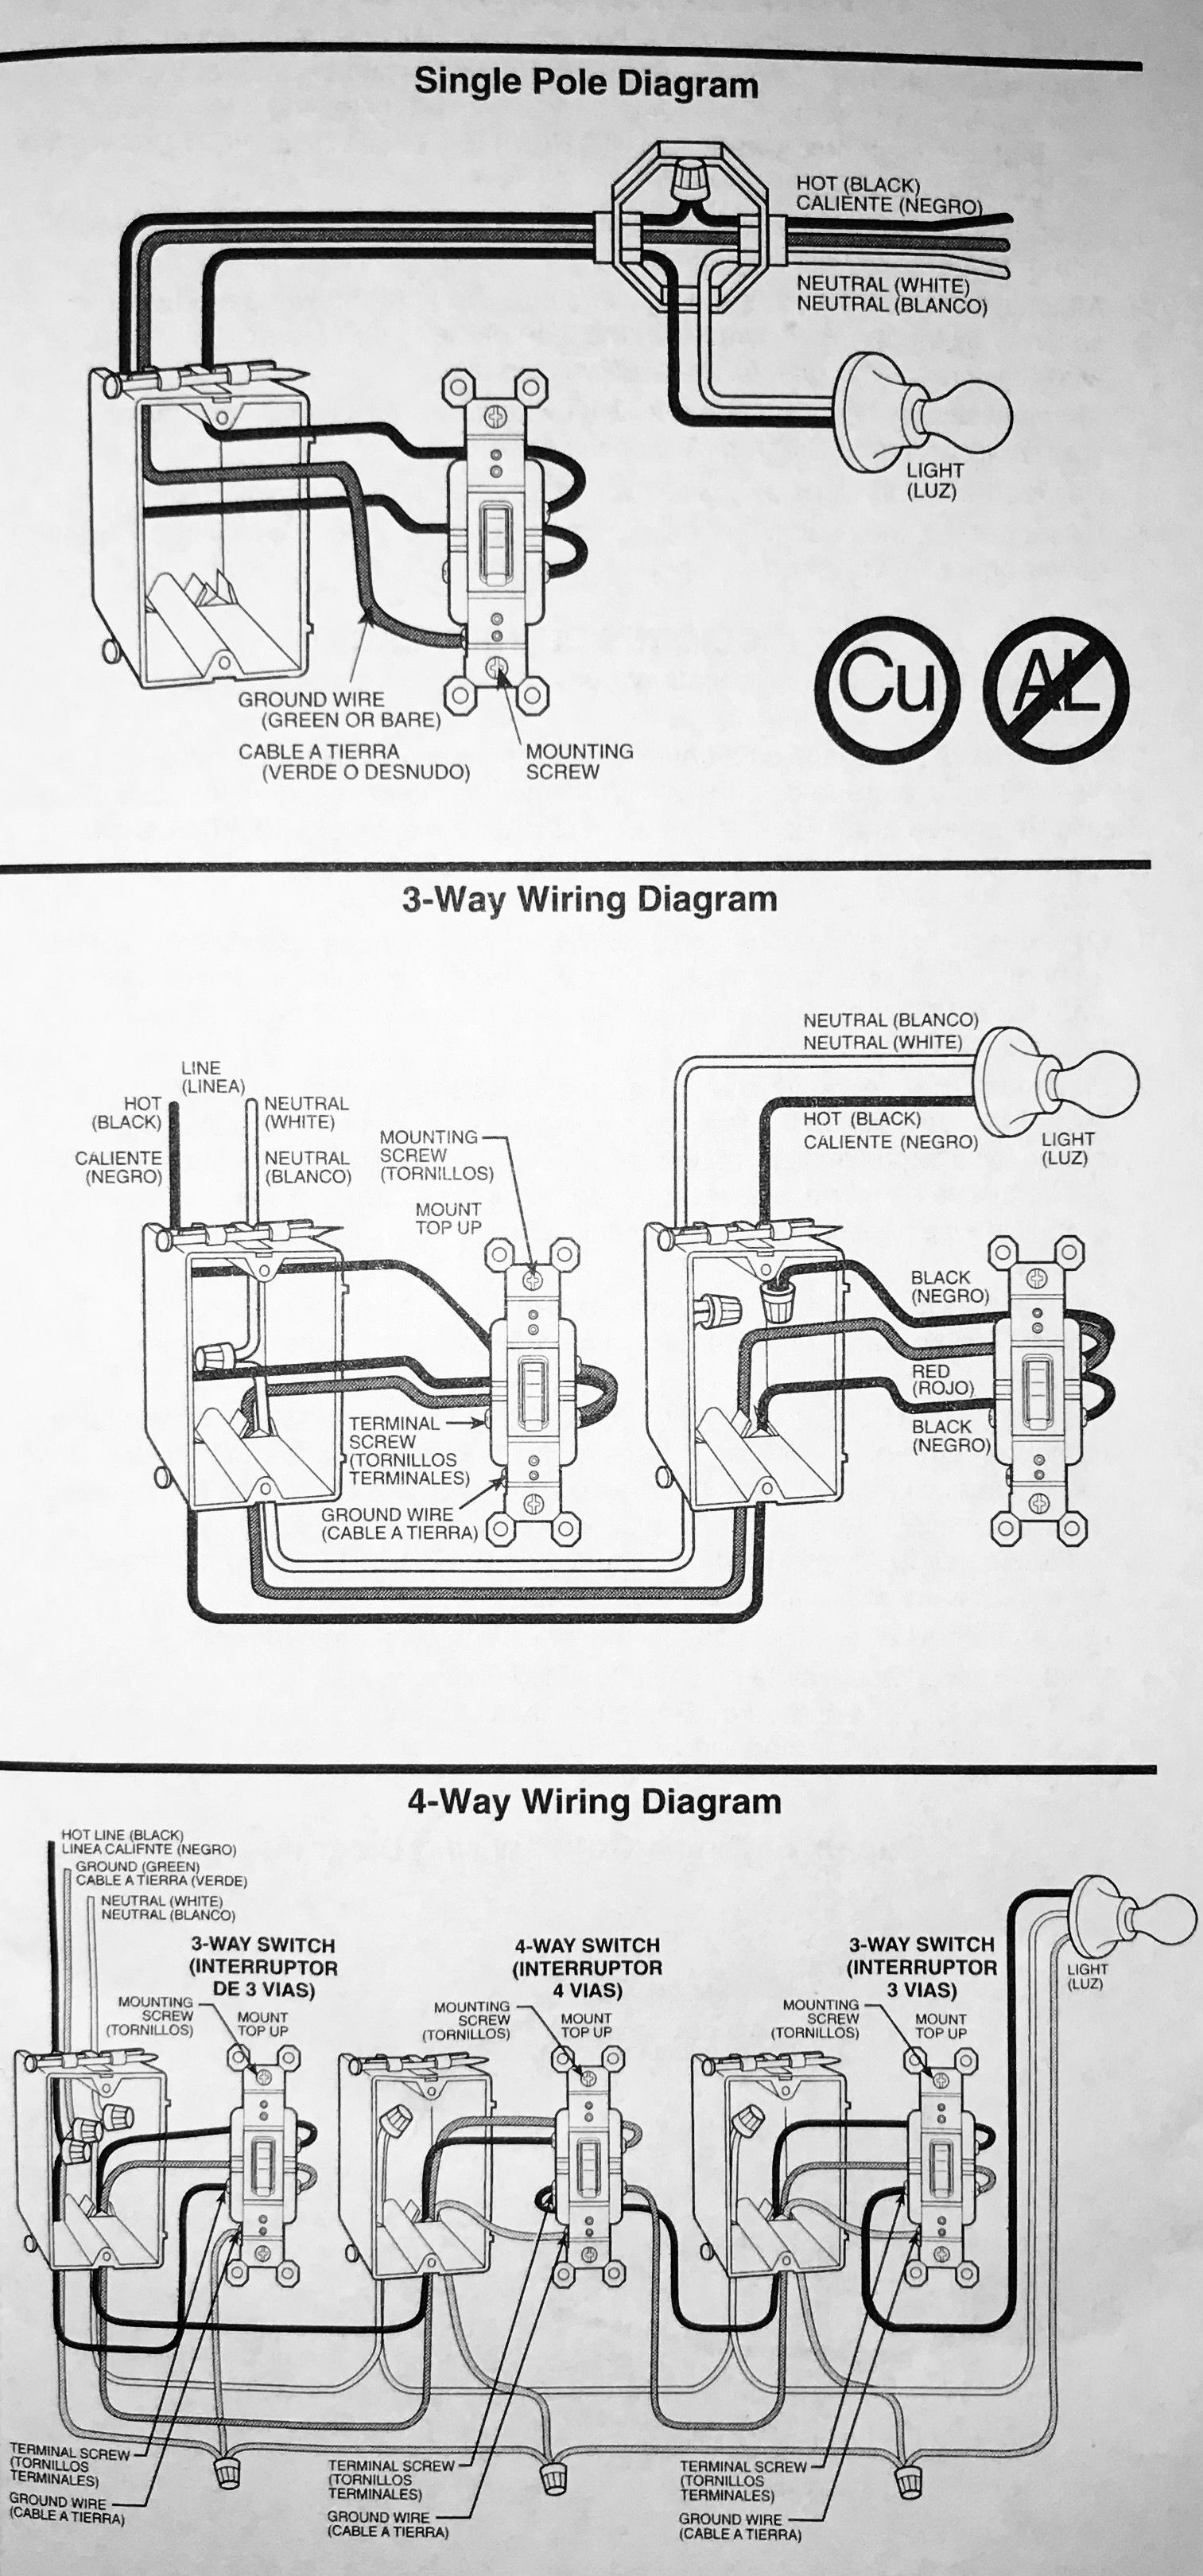 [SCHEMATICS_4US]  DB83332 4 Way Electrical Switch Wiring Diagram | Wiring Library | Vox Generator Vxg6500 Wiring Diagram |  | Wiring Library